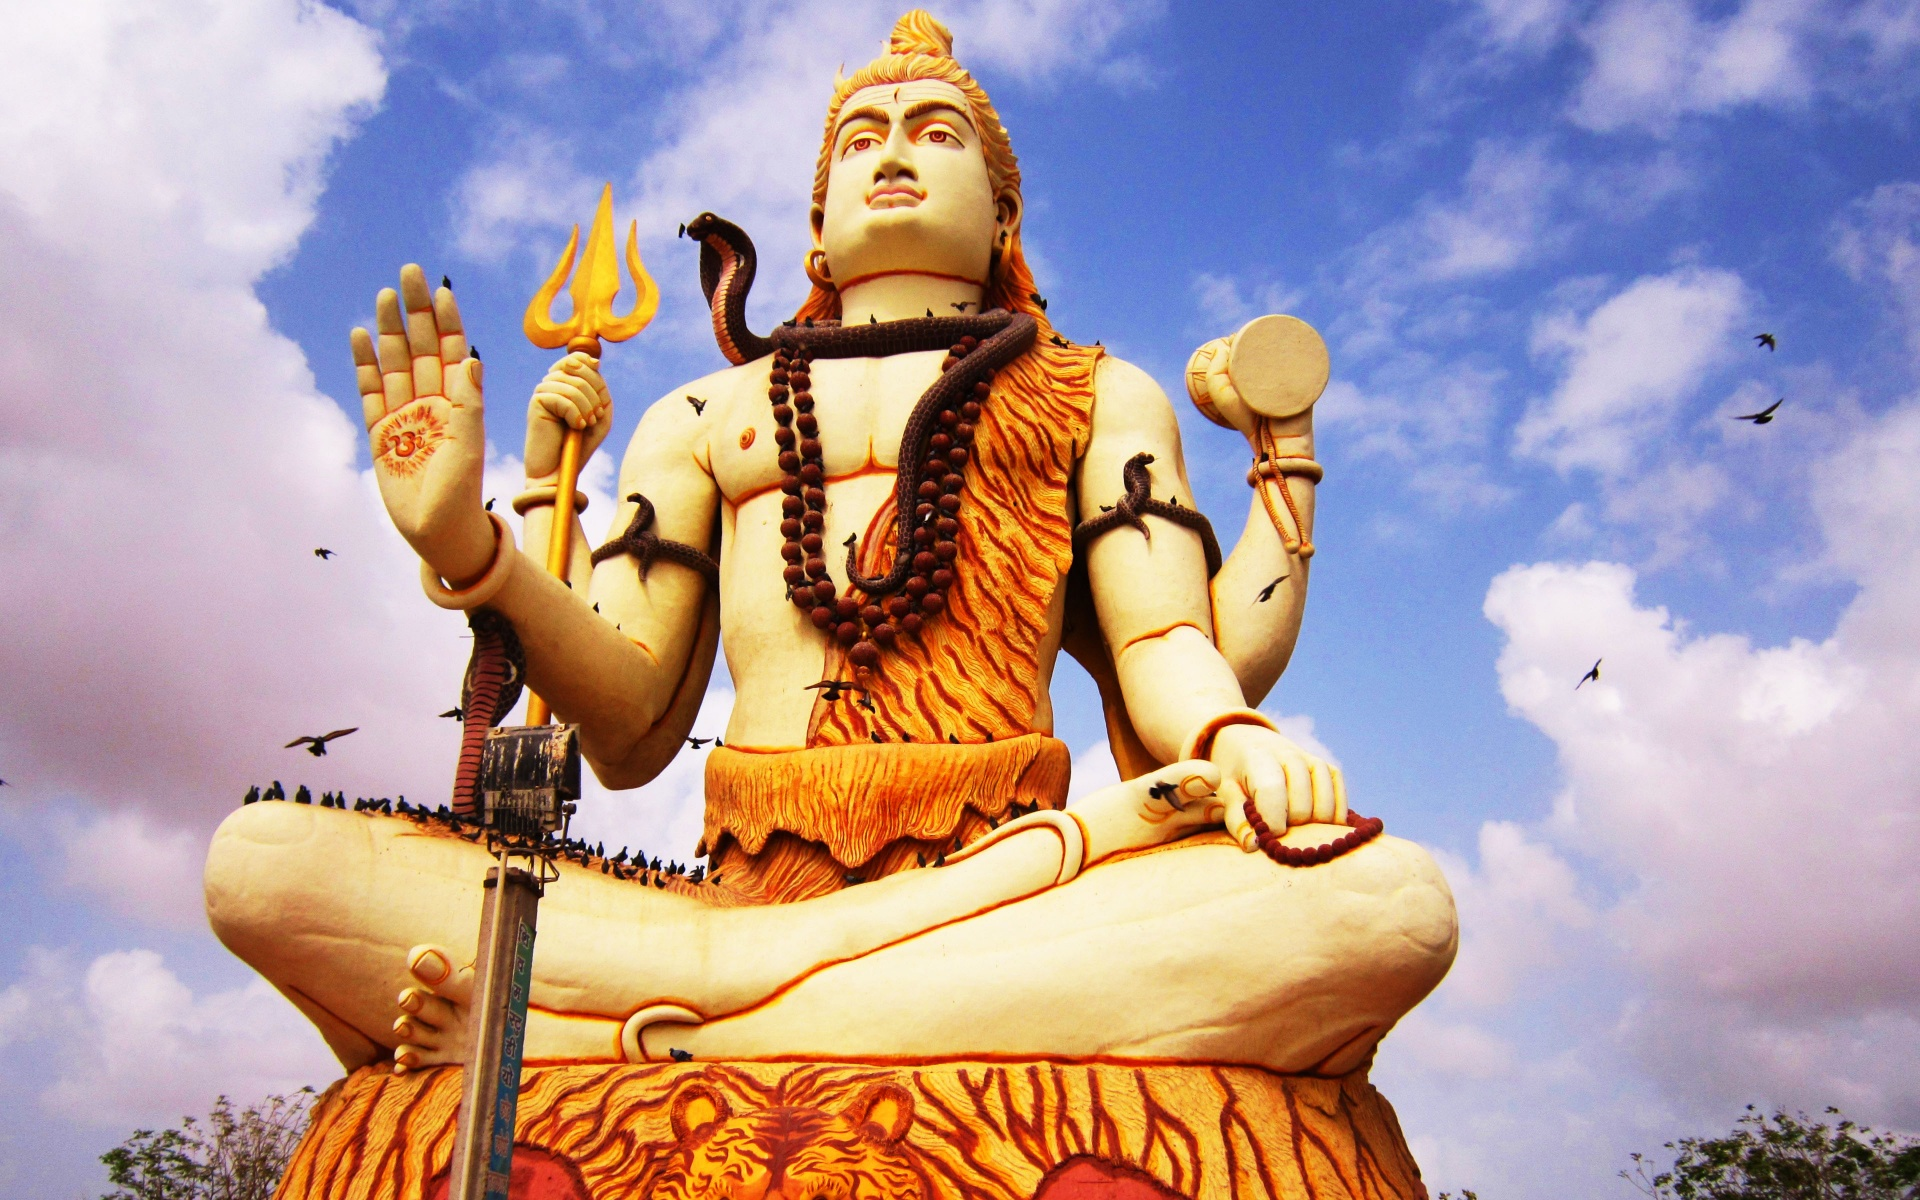 Wallpapers Lord Shiva Angry Photos Hd Kaal Bhairav 4: Lord Shiva Big Statue And Birds Wallpapers